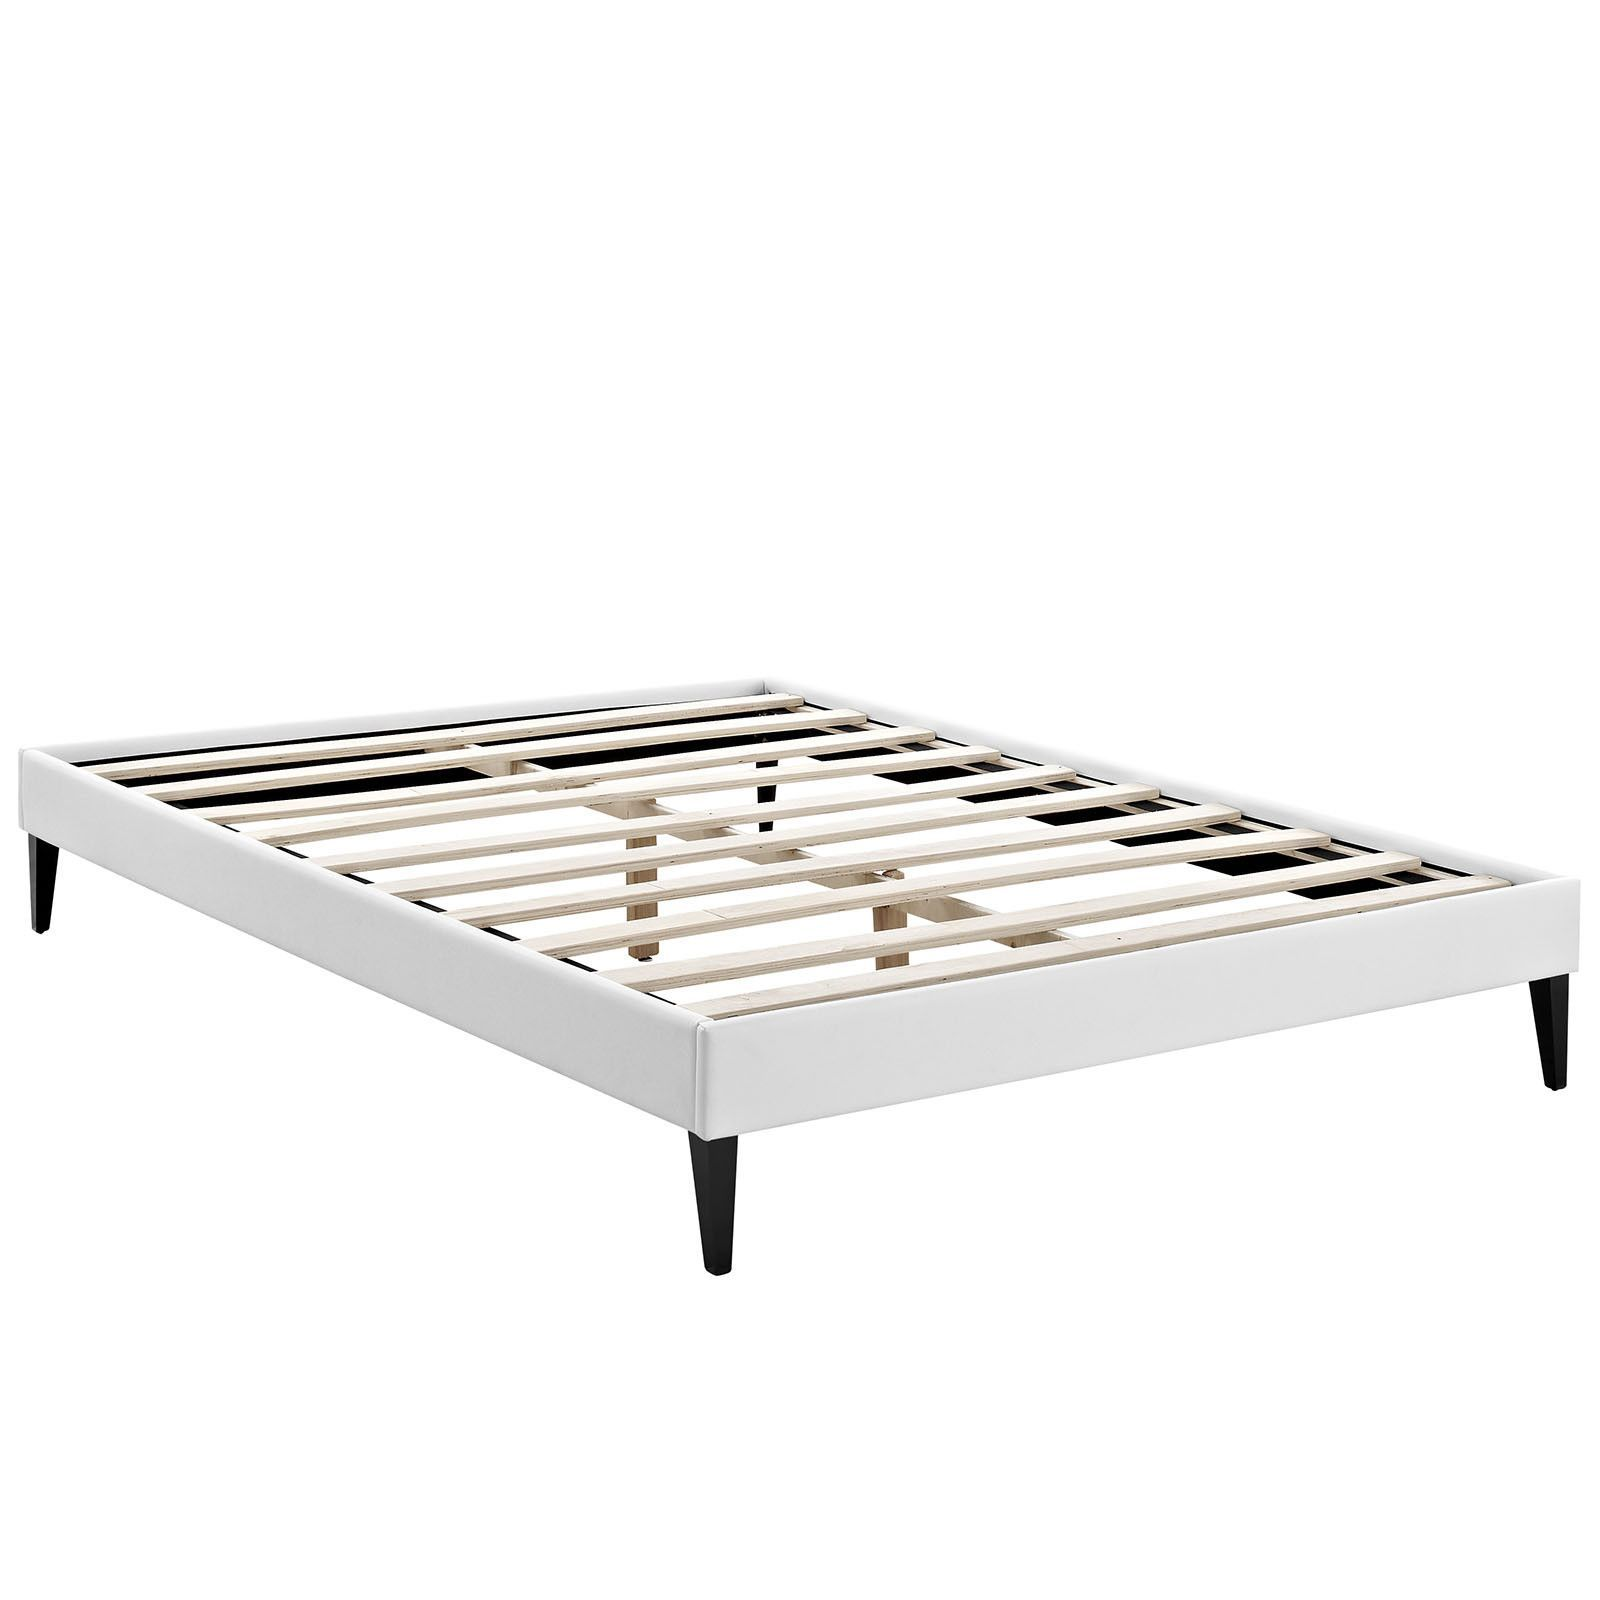 Sharon Full Vinyl Bed Frame with Squared Tapered Legs - White | Bed ...